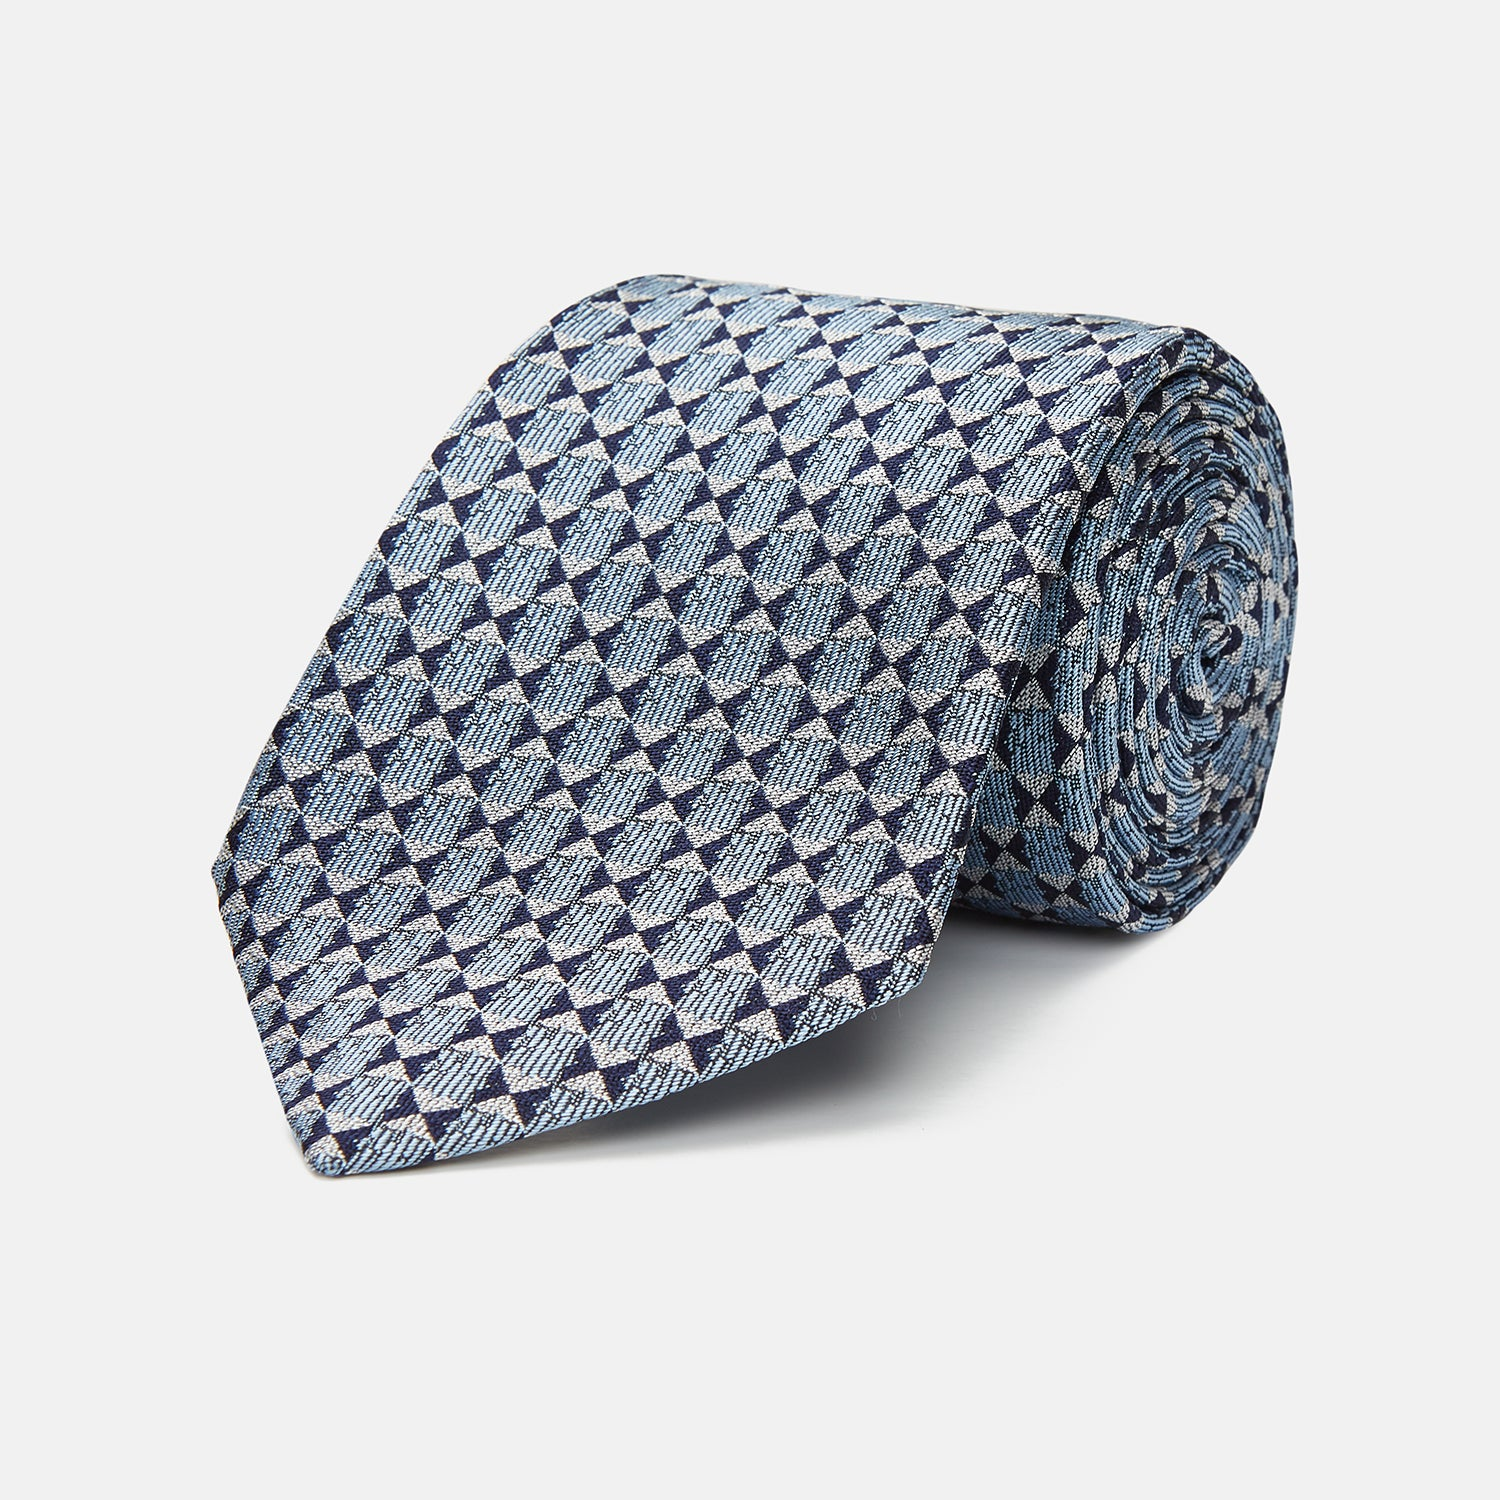 Chambray Blue Graphic Floral Silk Jacquard Tie